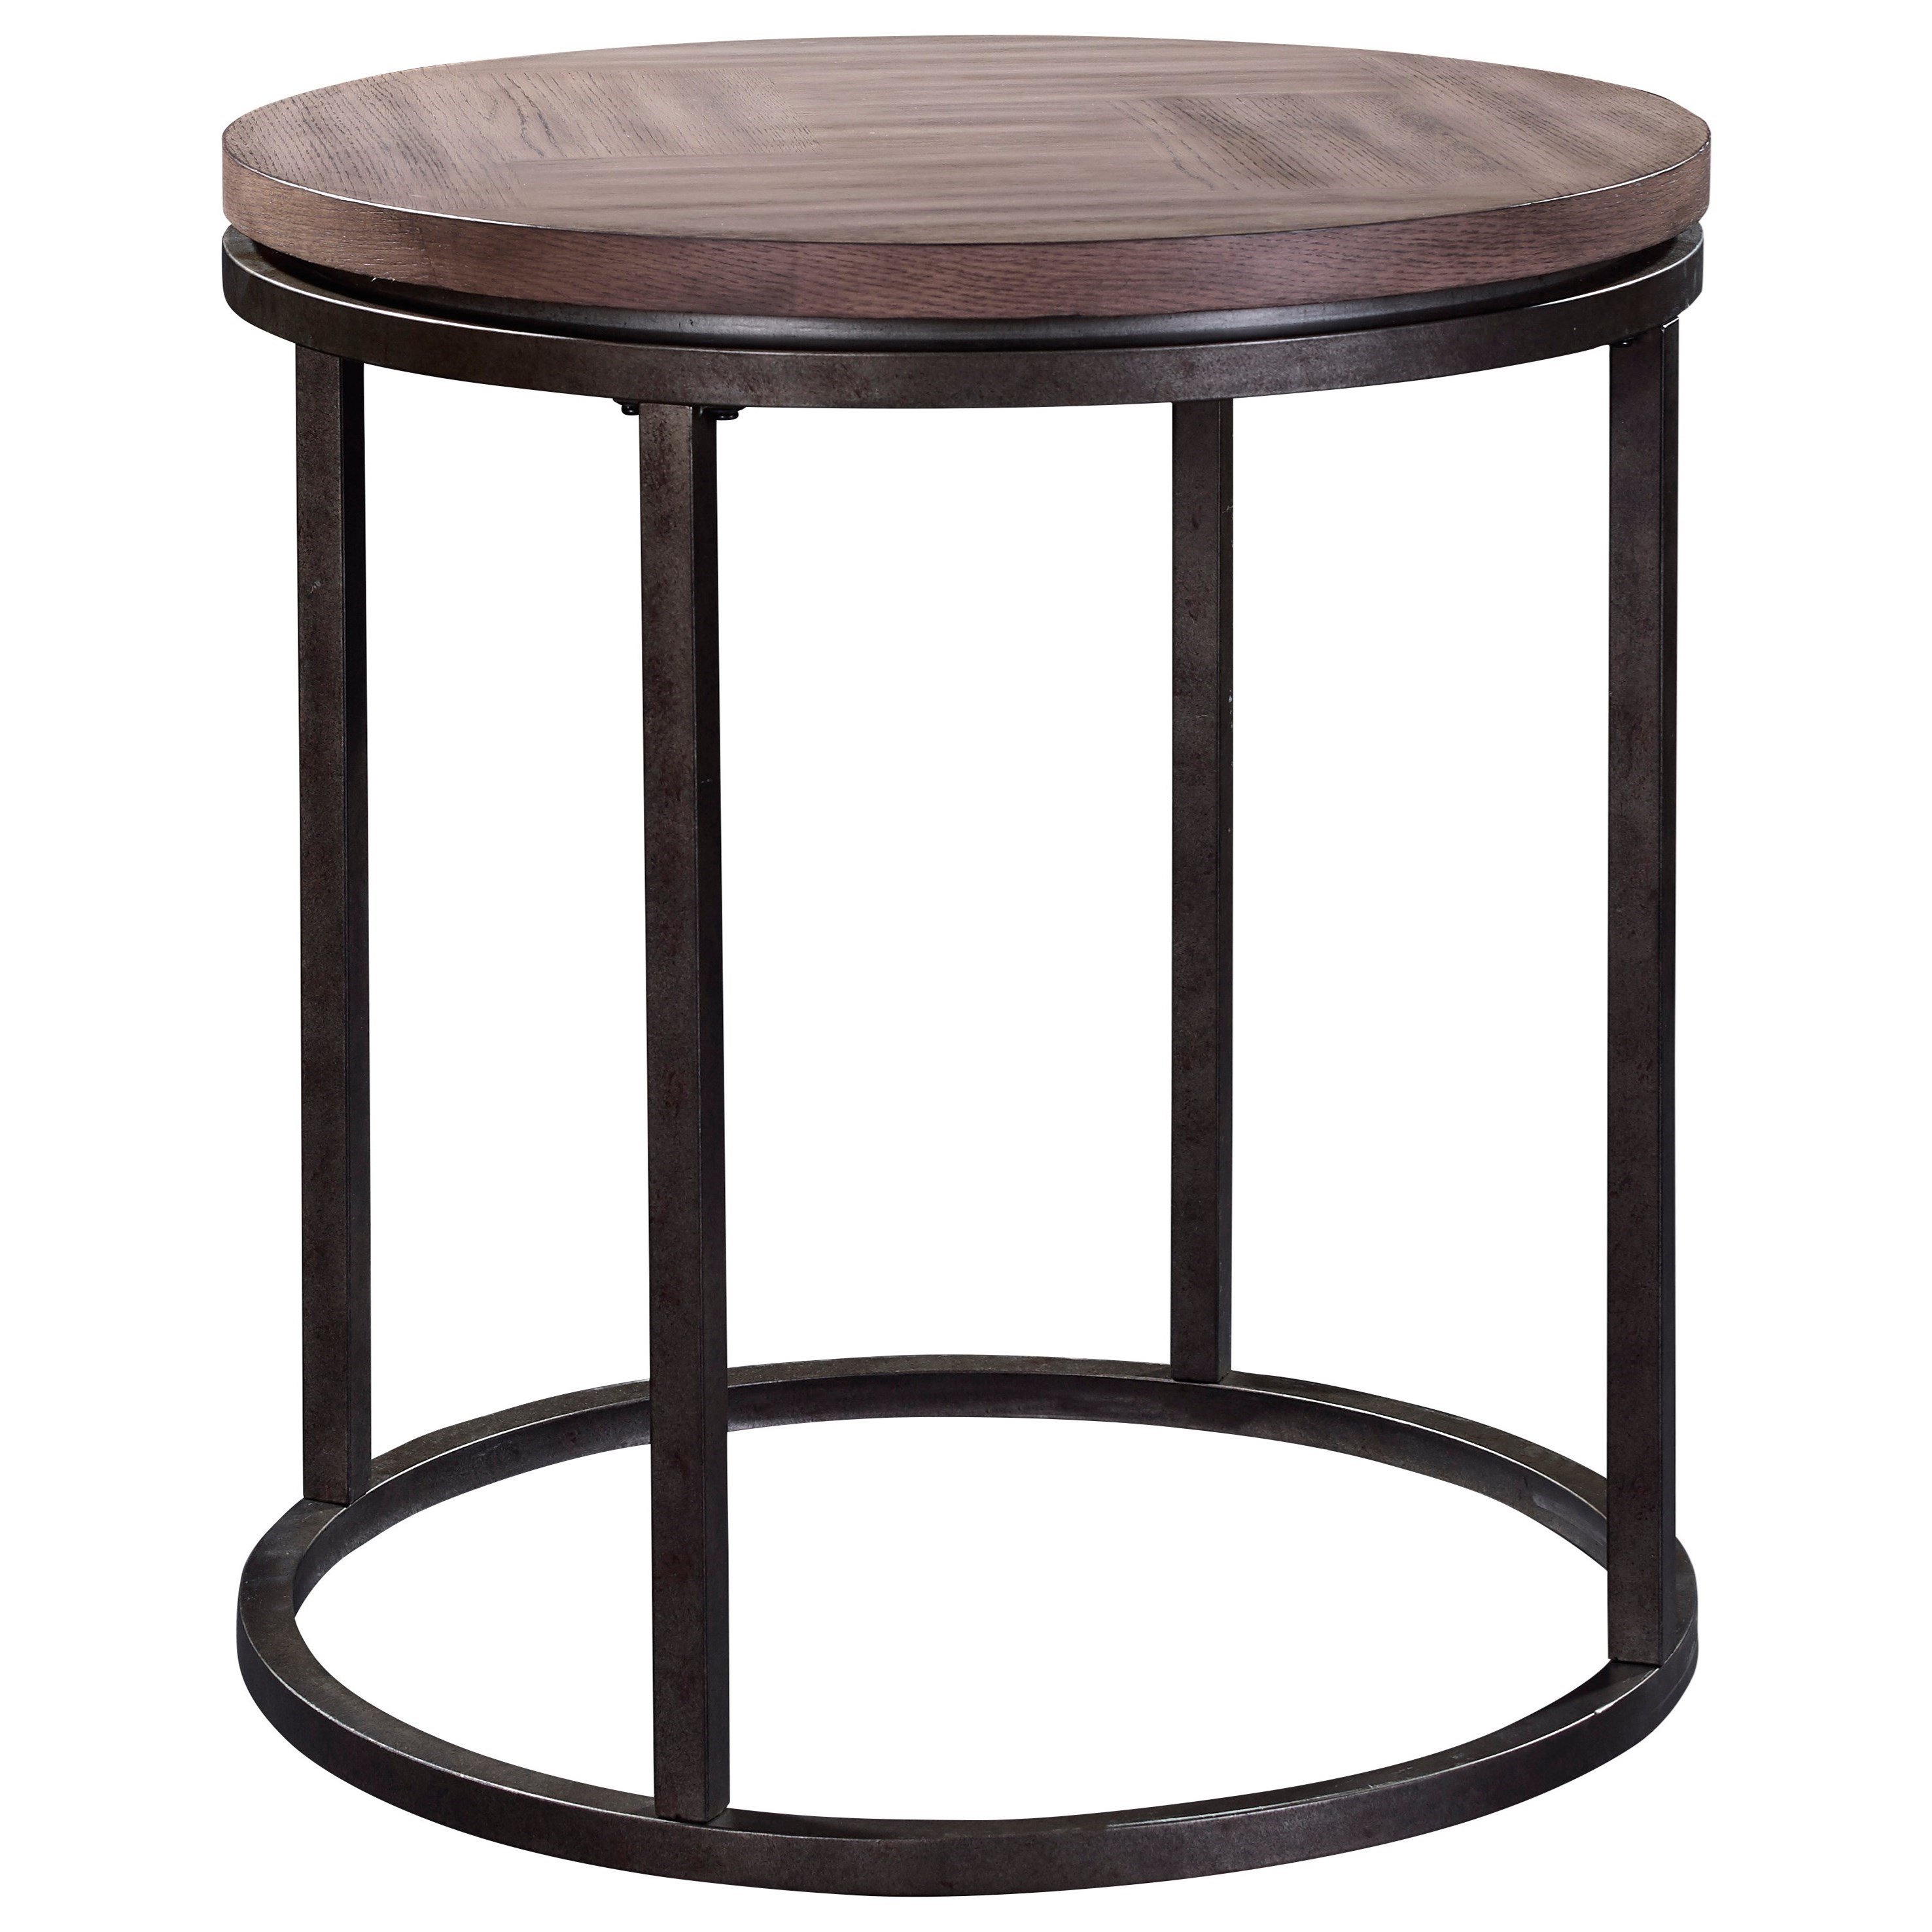 Broyhill Furniture Bedford Avenue St. John's Place Round Lamp Table - Item Number: 8615-011